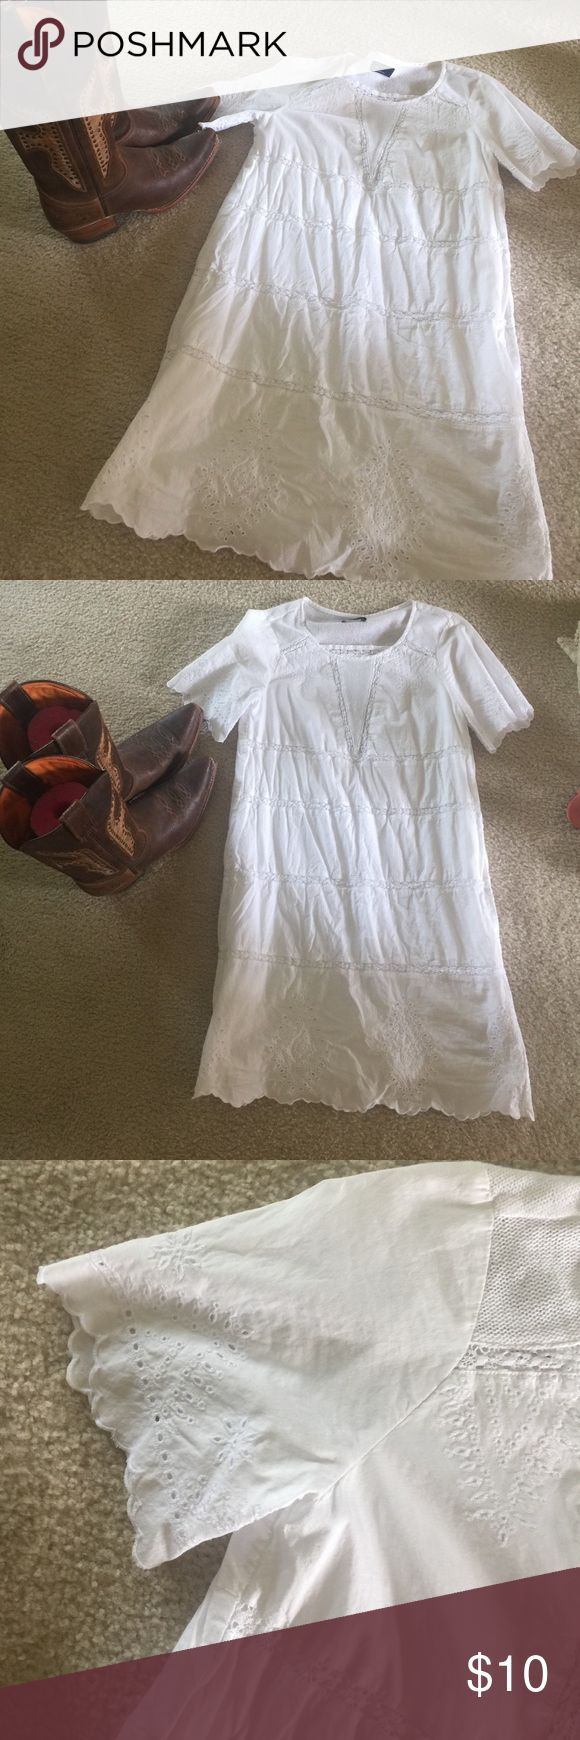 Gap lace dress. Gap Lace dress with lining. Perfect summer dress. Worn once. It is wrinkled in picture as I have not ironed it. Close up of sleeve and bottom of dress. Perfect dress for country concert or picnic. Xsmall. GAP Dresses